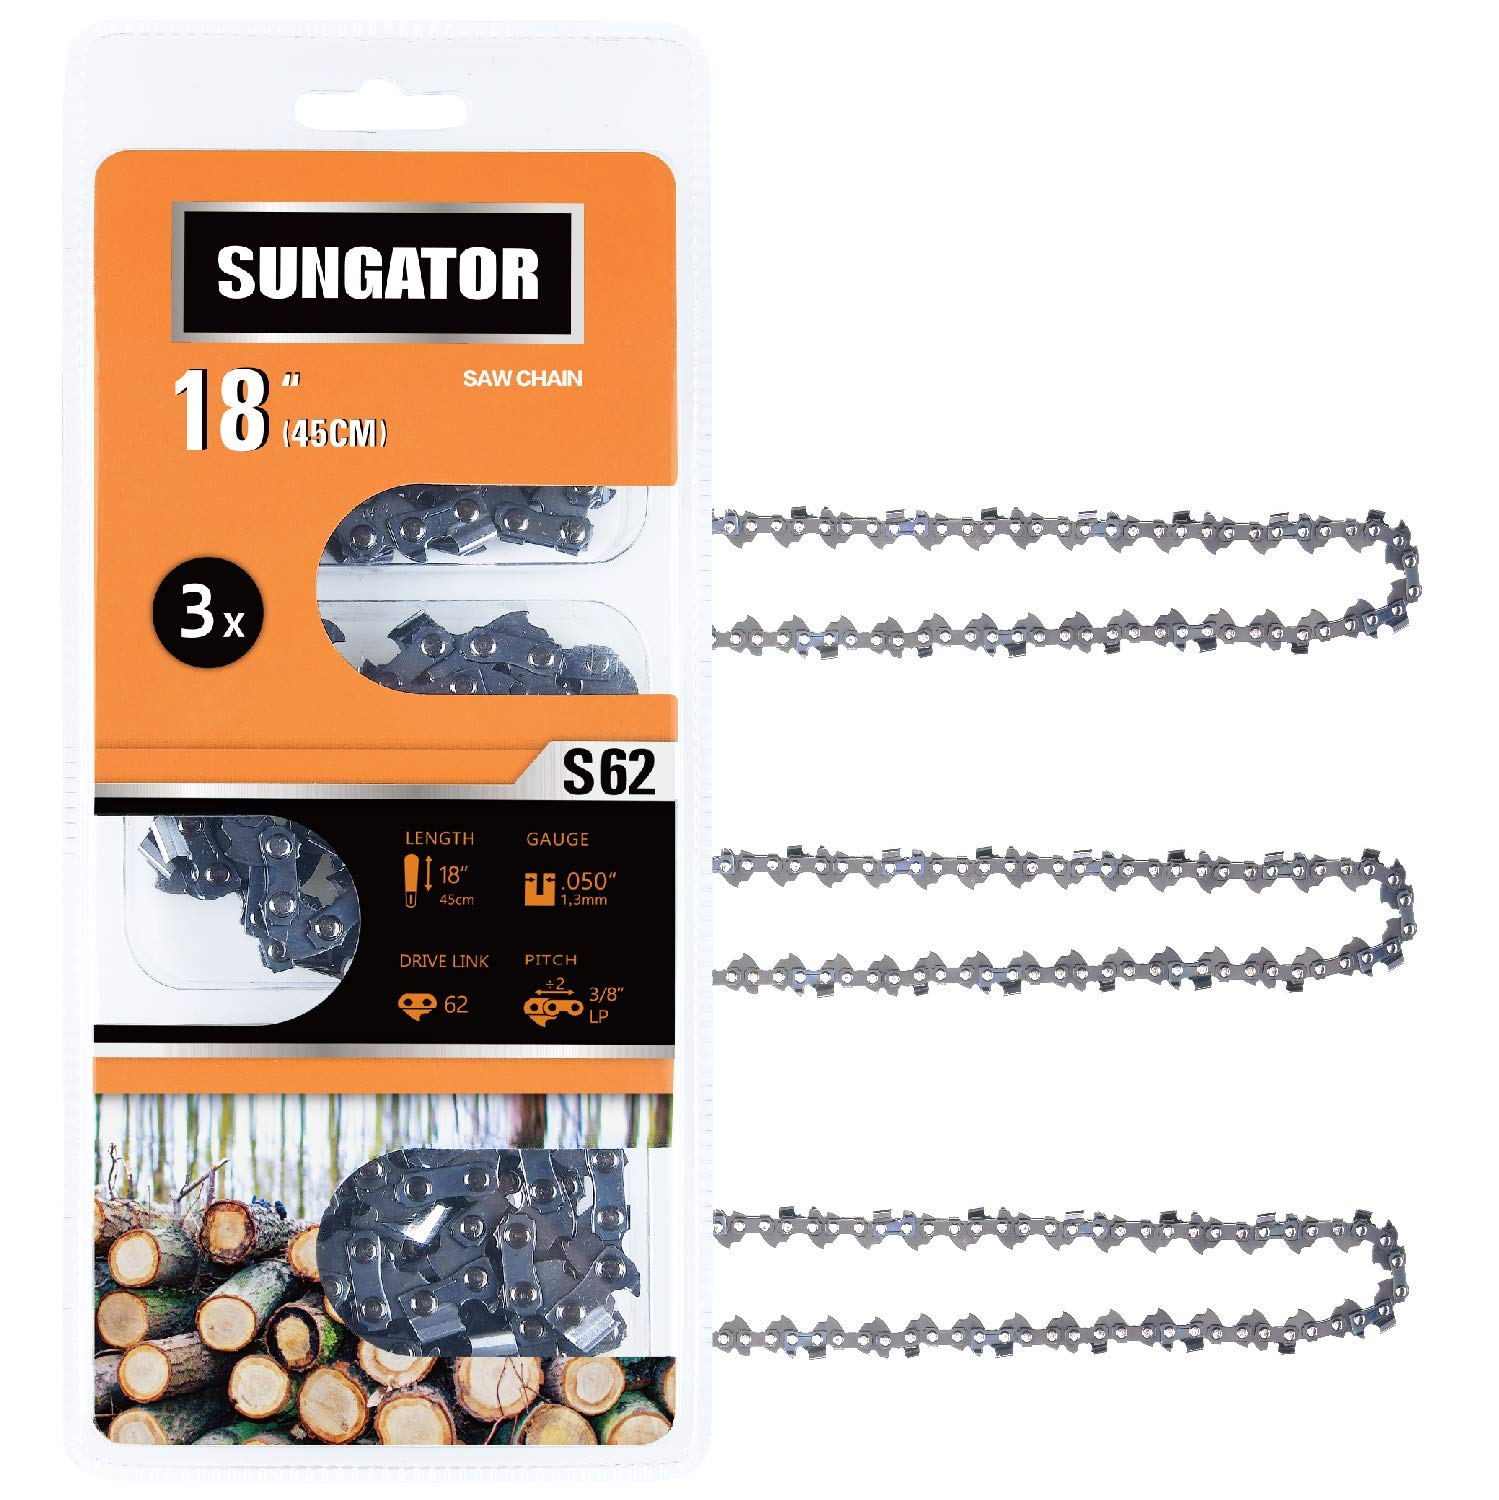 SUNGATOR 3-Pack 18 Inch Chainsaw Chain SG-S62, 3/8'' LP Pitch - .050'' Gauge - 62 Drive Links, Fits Craftsman, Husqvarna, Ryobi, Homelite, Poulan by SUNGATOR